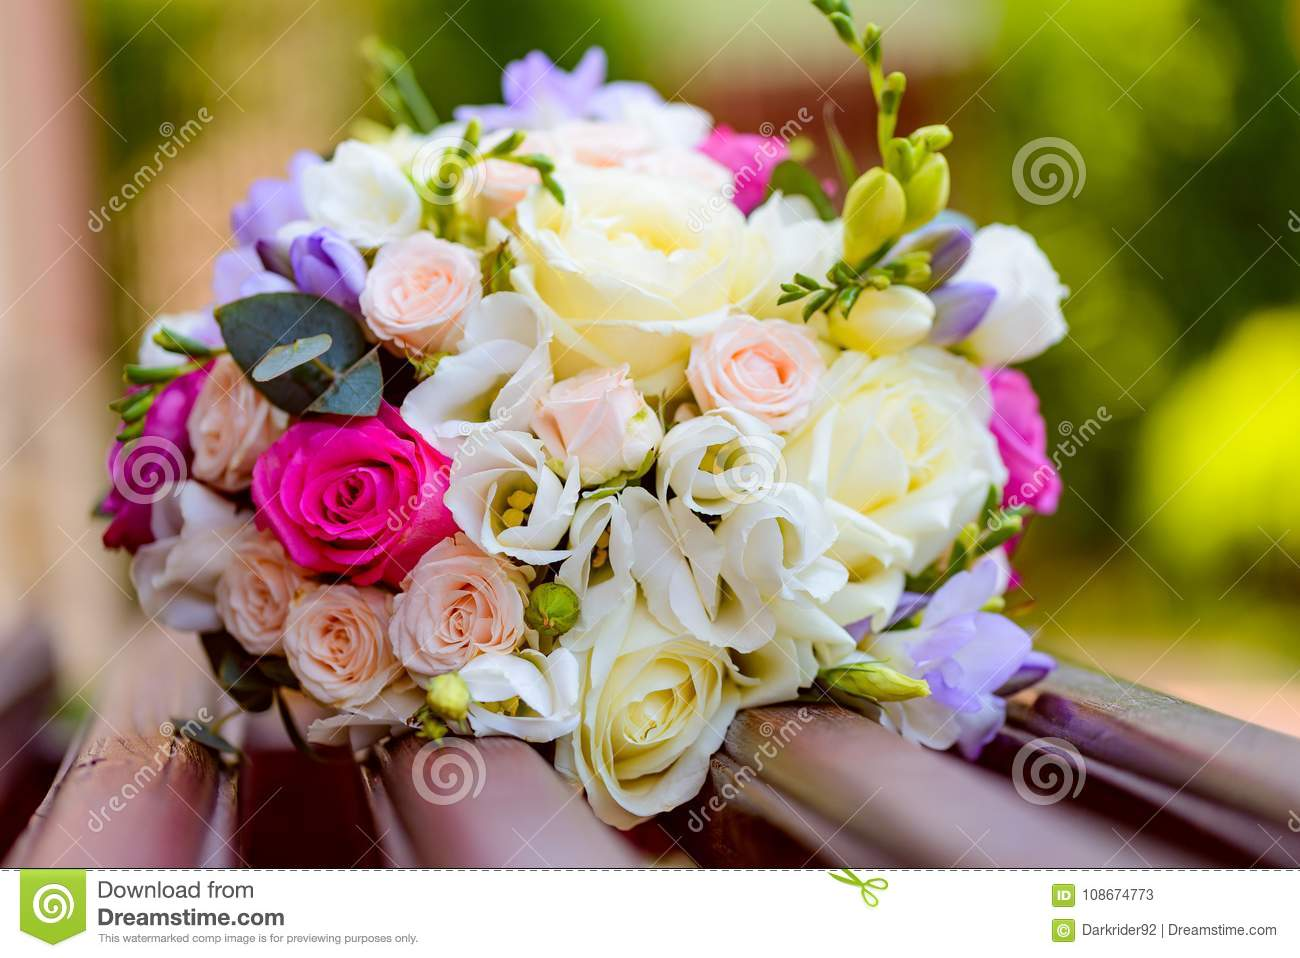 Flowers Bouquet Laying On Bench Stock Image Image Of Love Floral